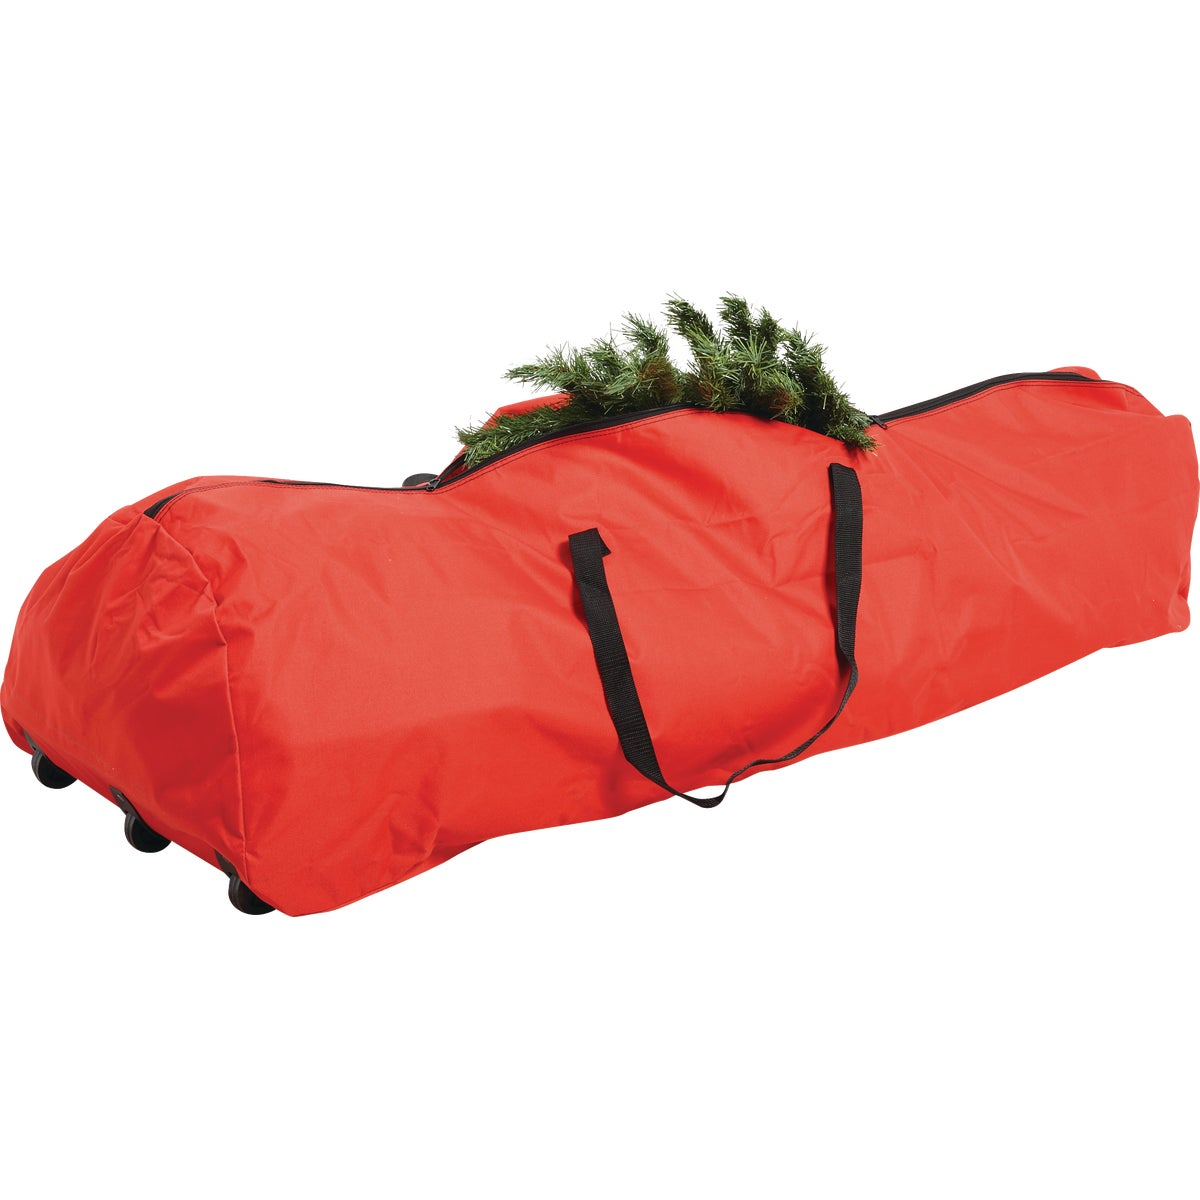 7.5' ROLLING TREE BAG - 77000-1 by Dyno Seasonal Sol